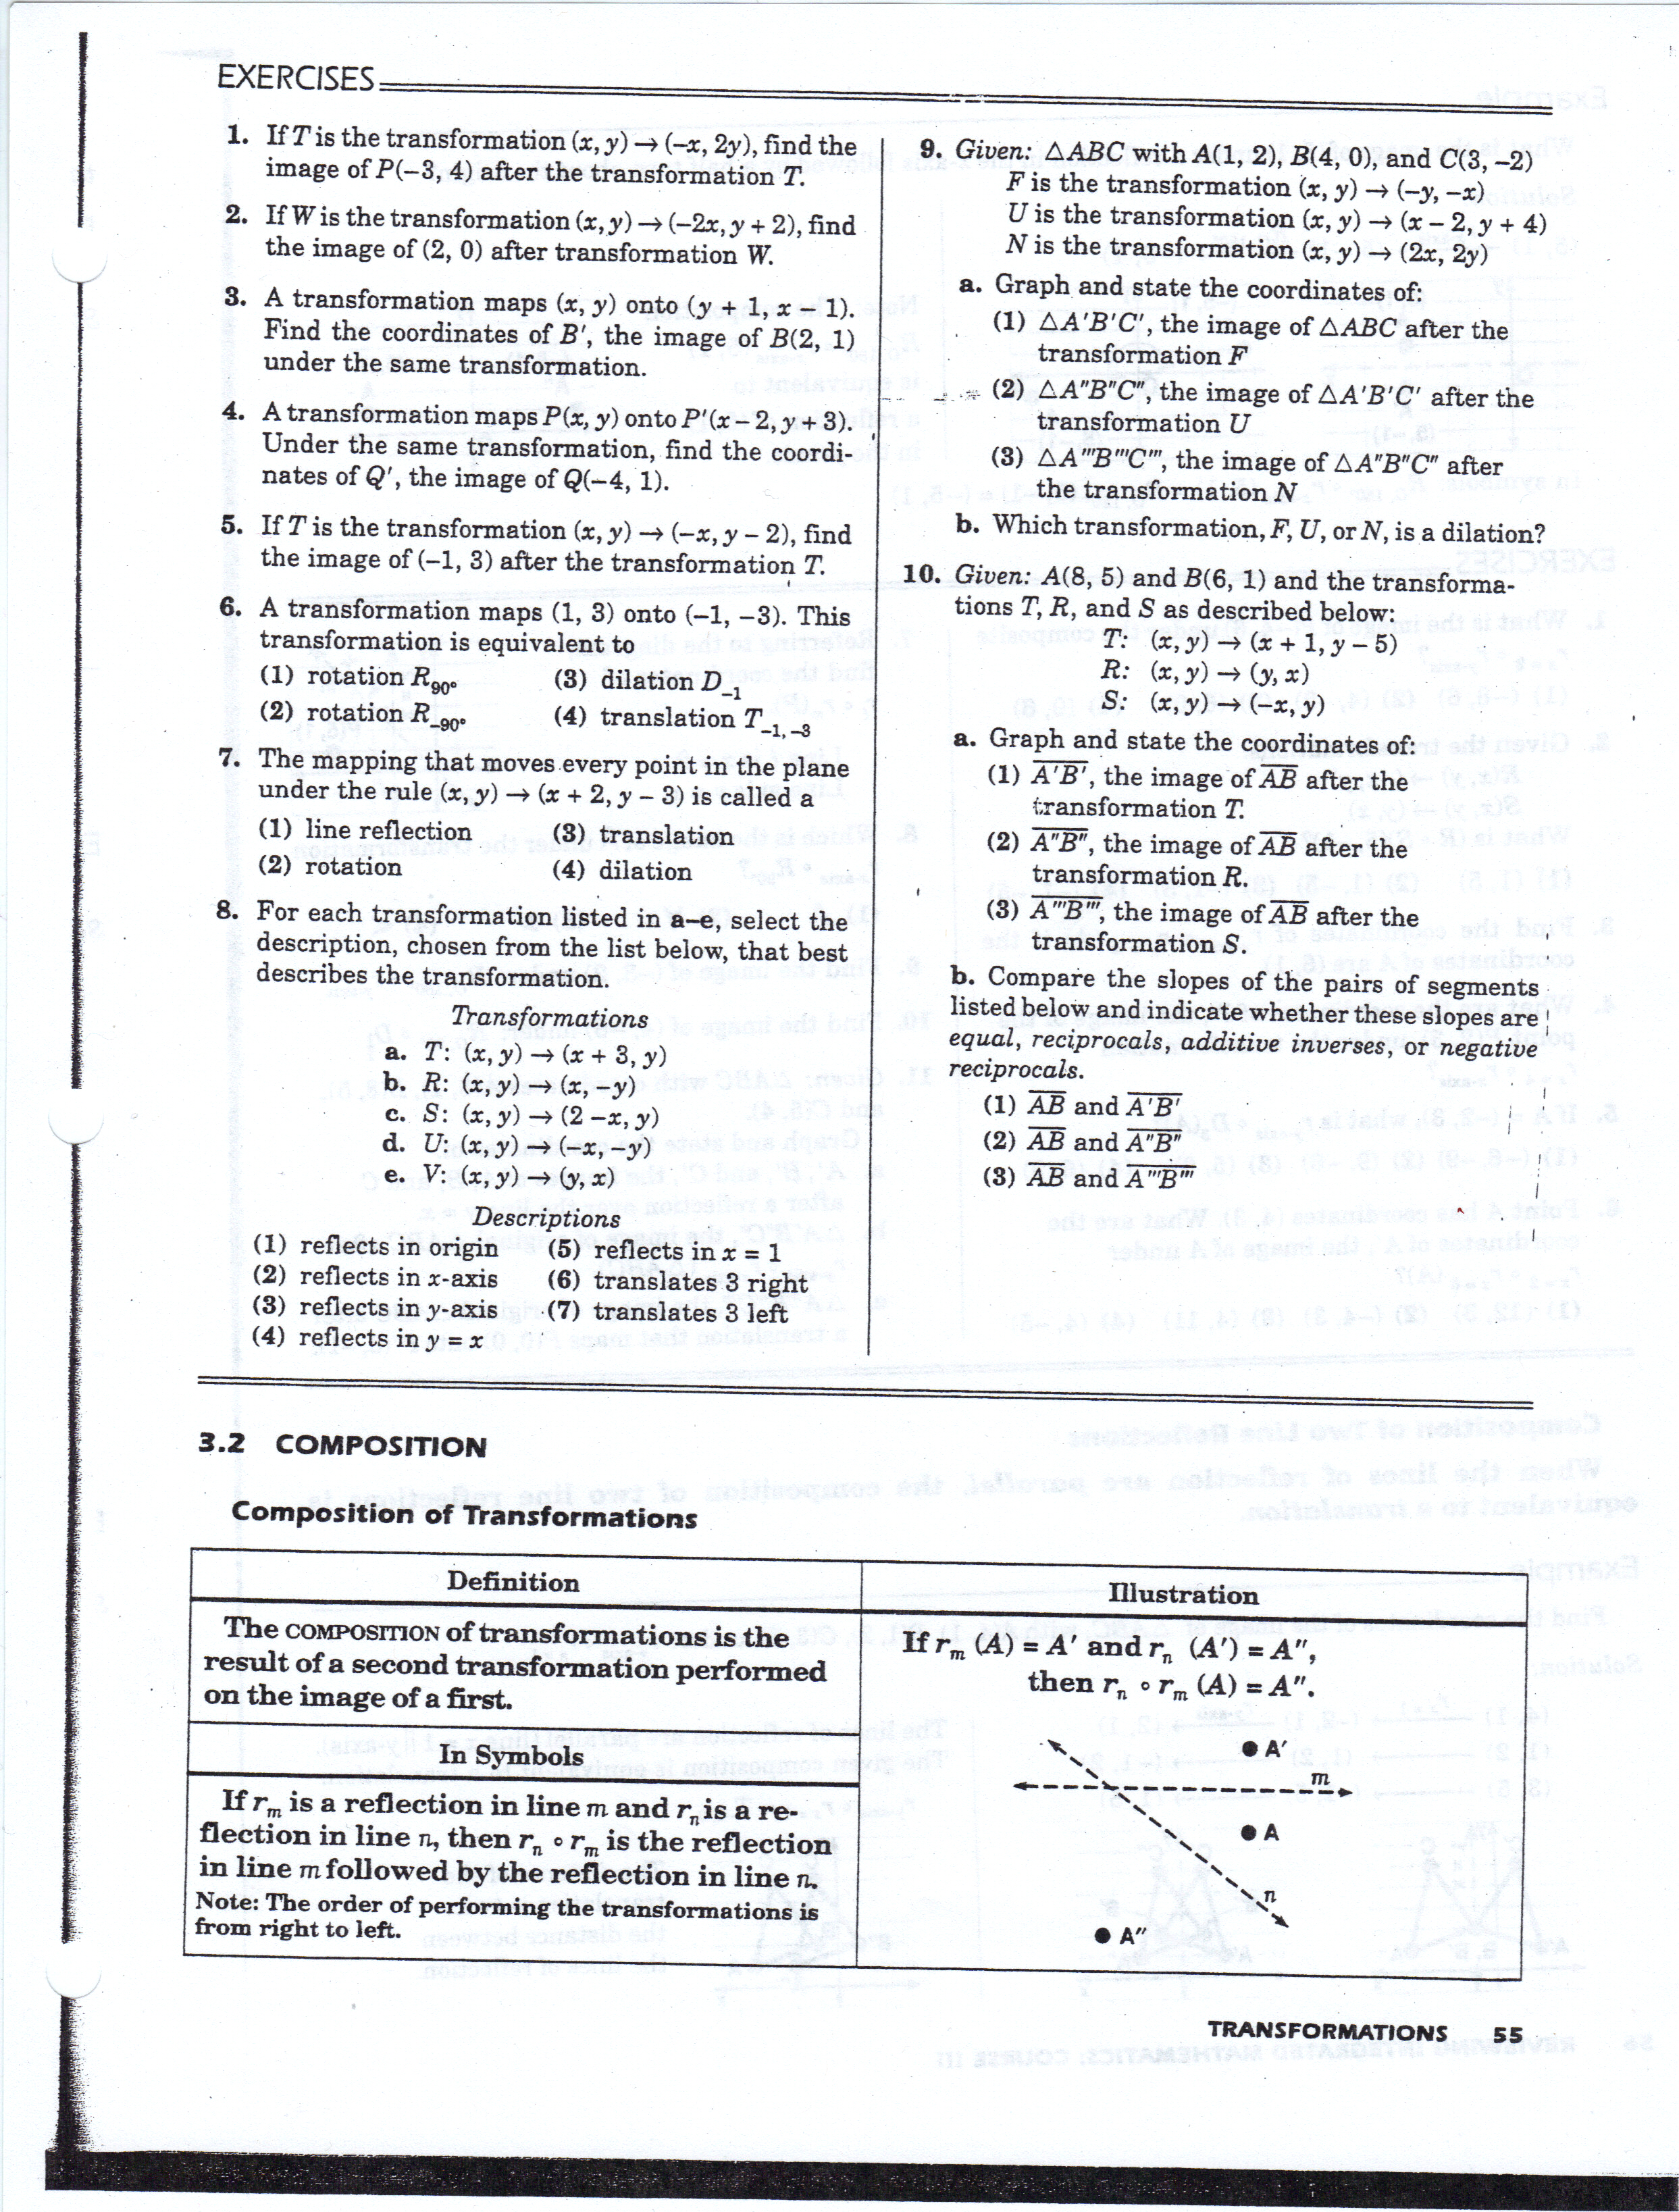 Geometry Worksheets - MHSHS Wiki